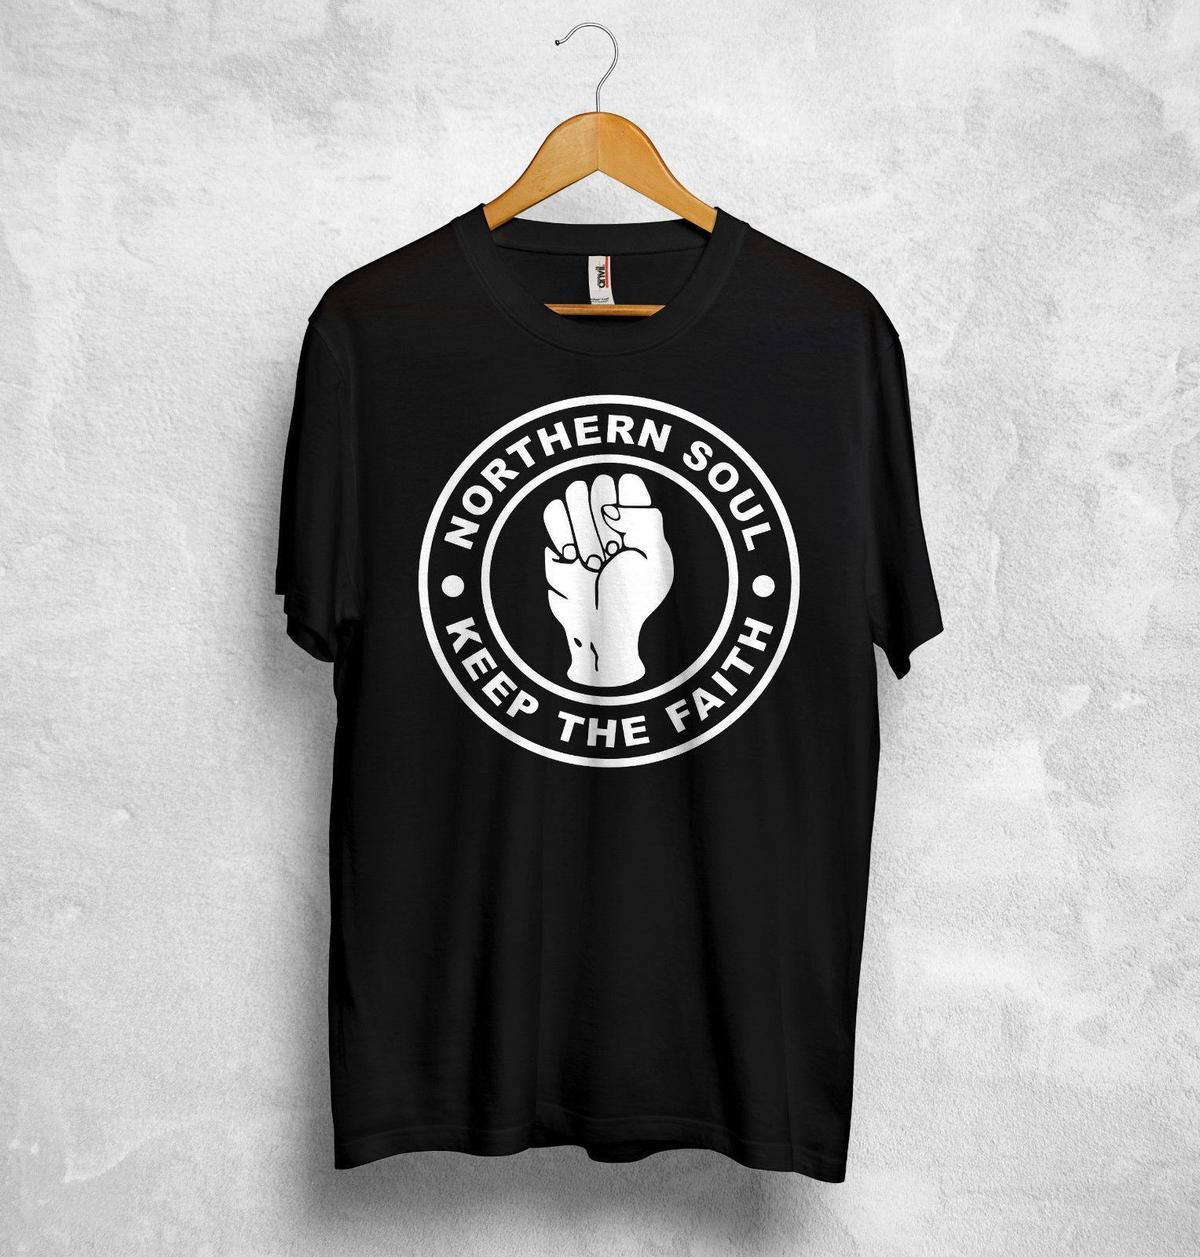 Northern Soul T Shirt Top Keep The Faith England Soul Motown Little Anthony